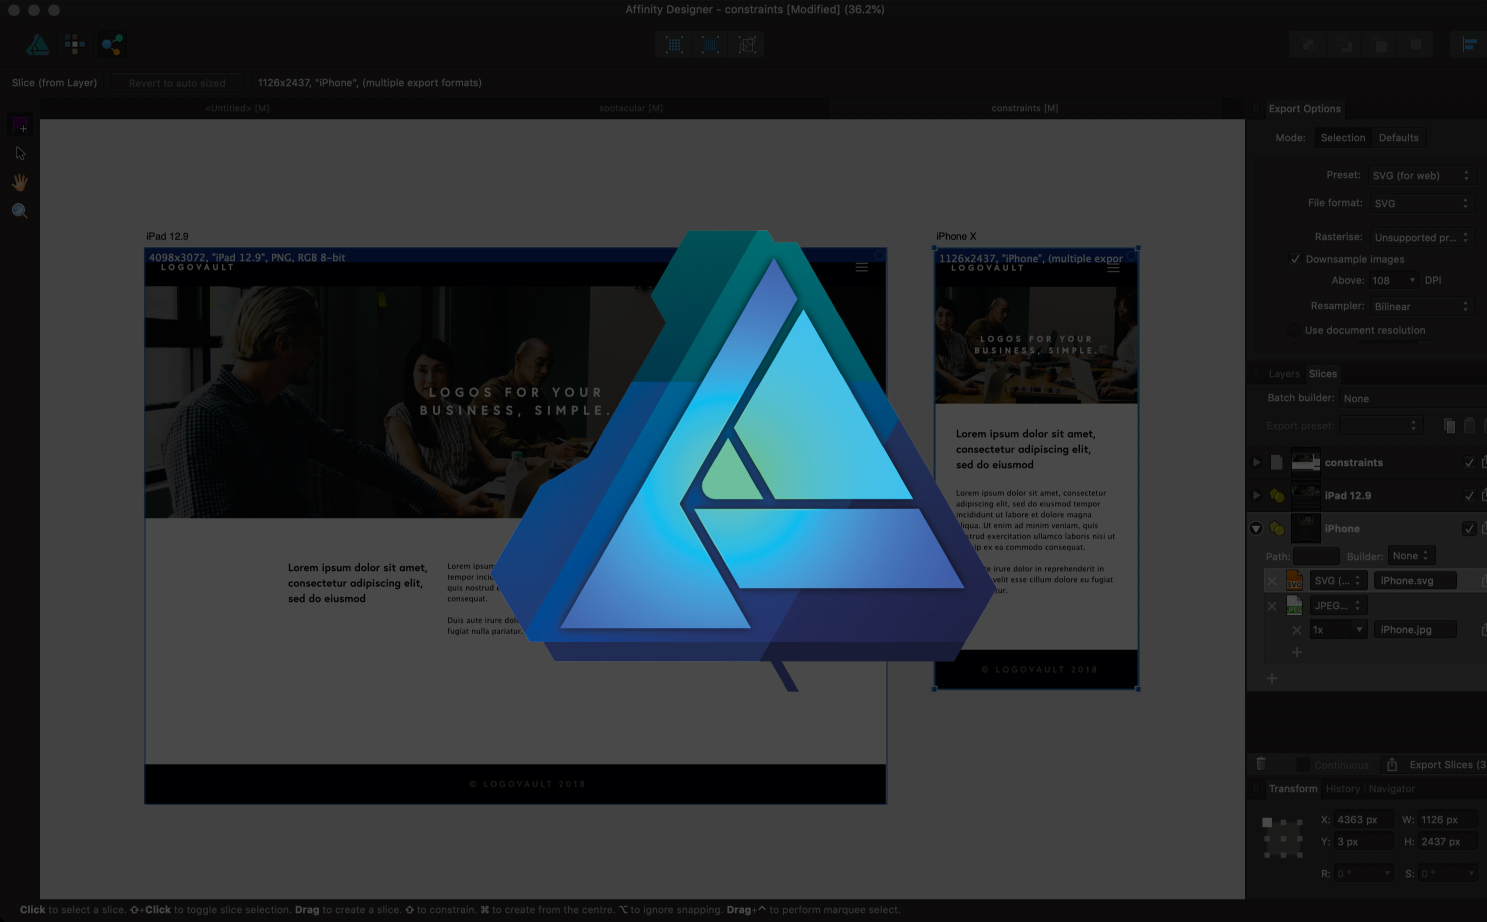 Flipboard: Affinity Designer: How to use the Export persona